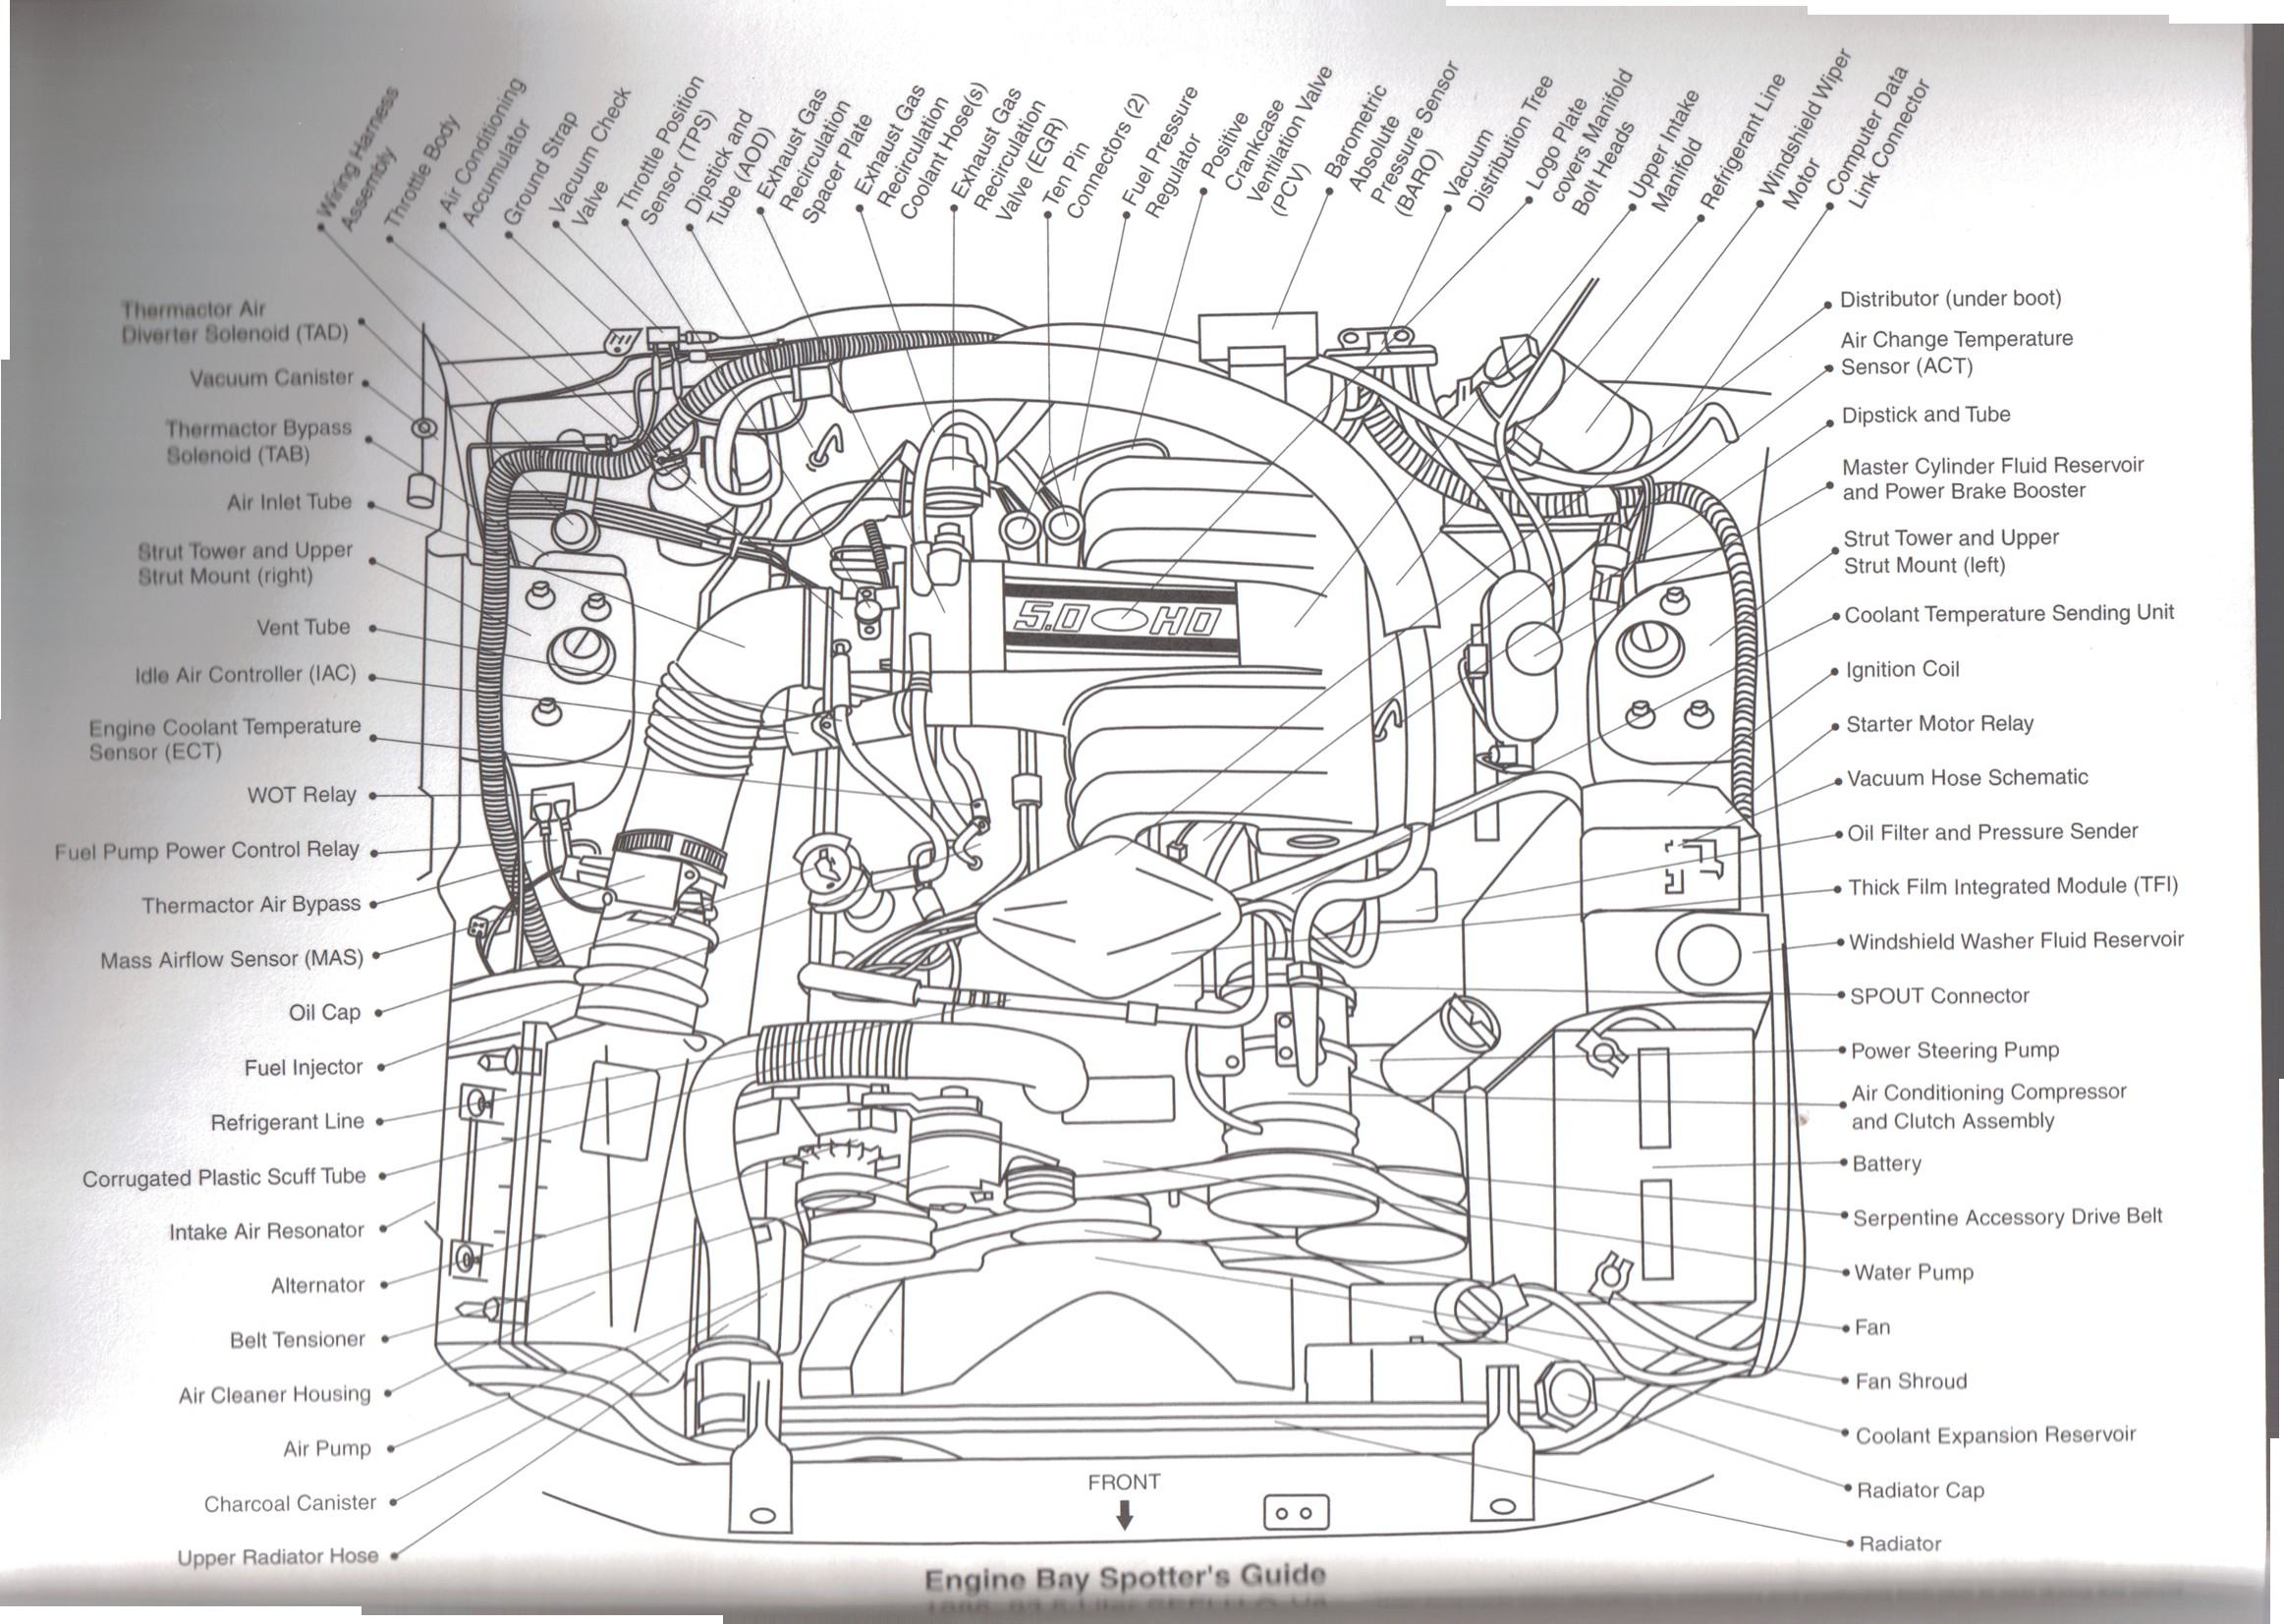 ford 302 engine diagram fox body 302 engine diagram wiring info rh detoxicrecenze com Ford 3.0L Engine Diagram ford 302 engine diagrams free